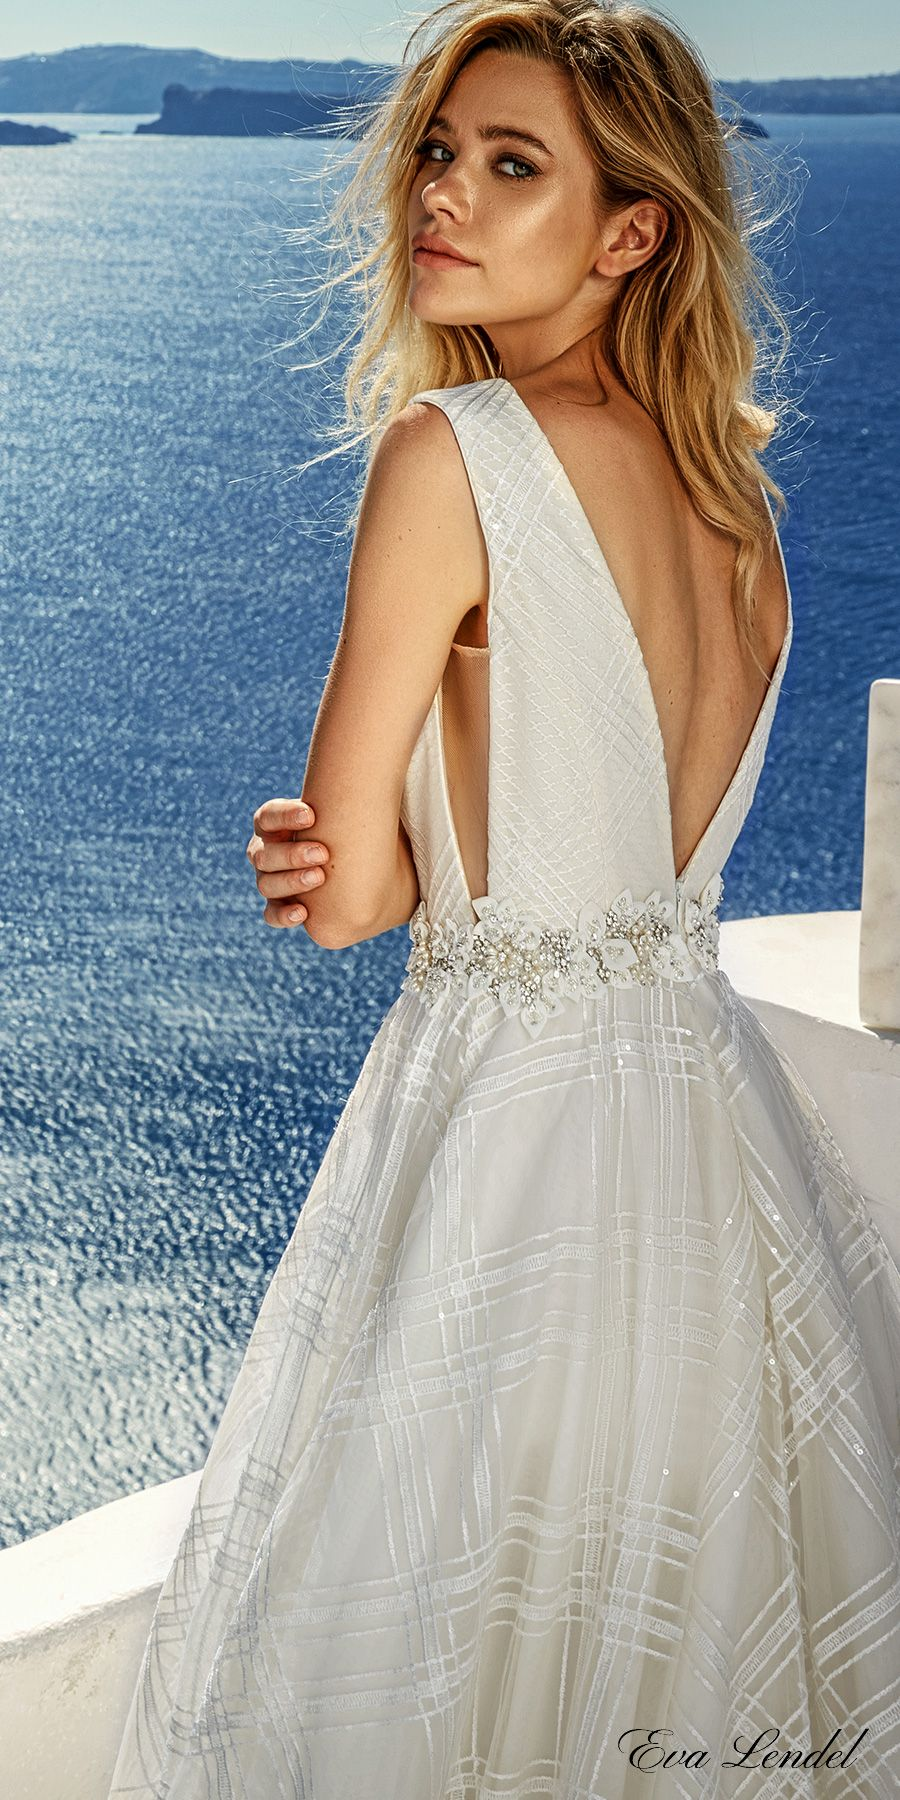 Eva Lendel 2017 Bridal Sleeveless Deep V Neck Open Side Full Embellishment Y Elegant A Line Wedding Dress Low Back Chapel Train Brooke Zbv